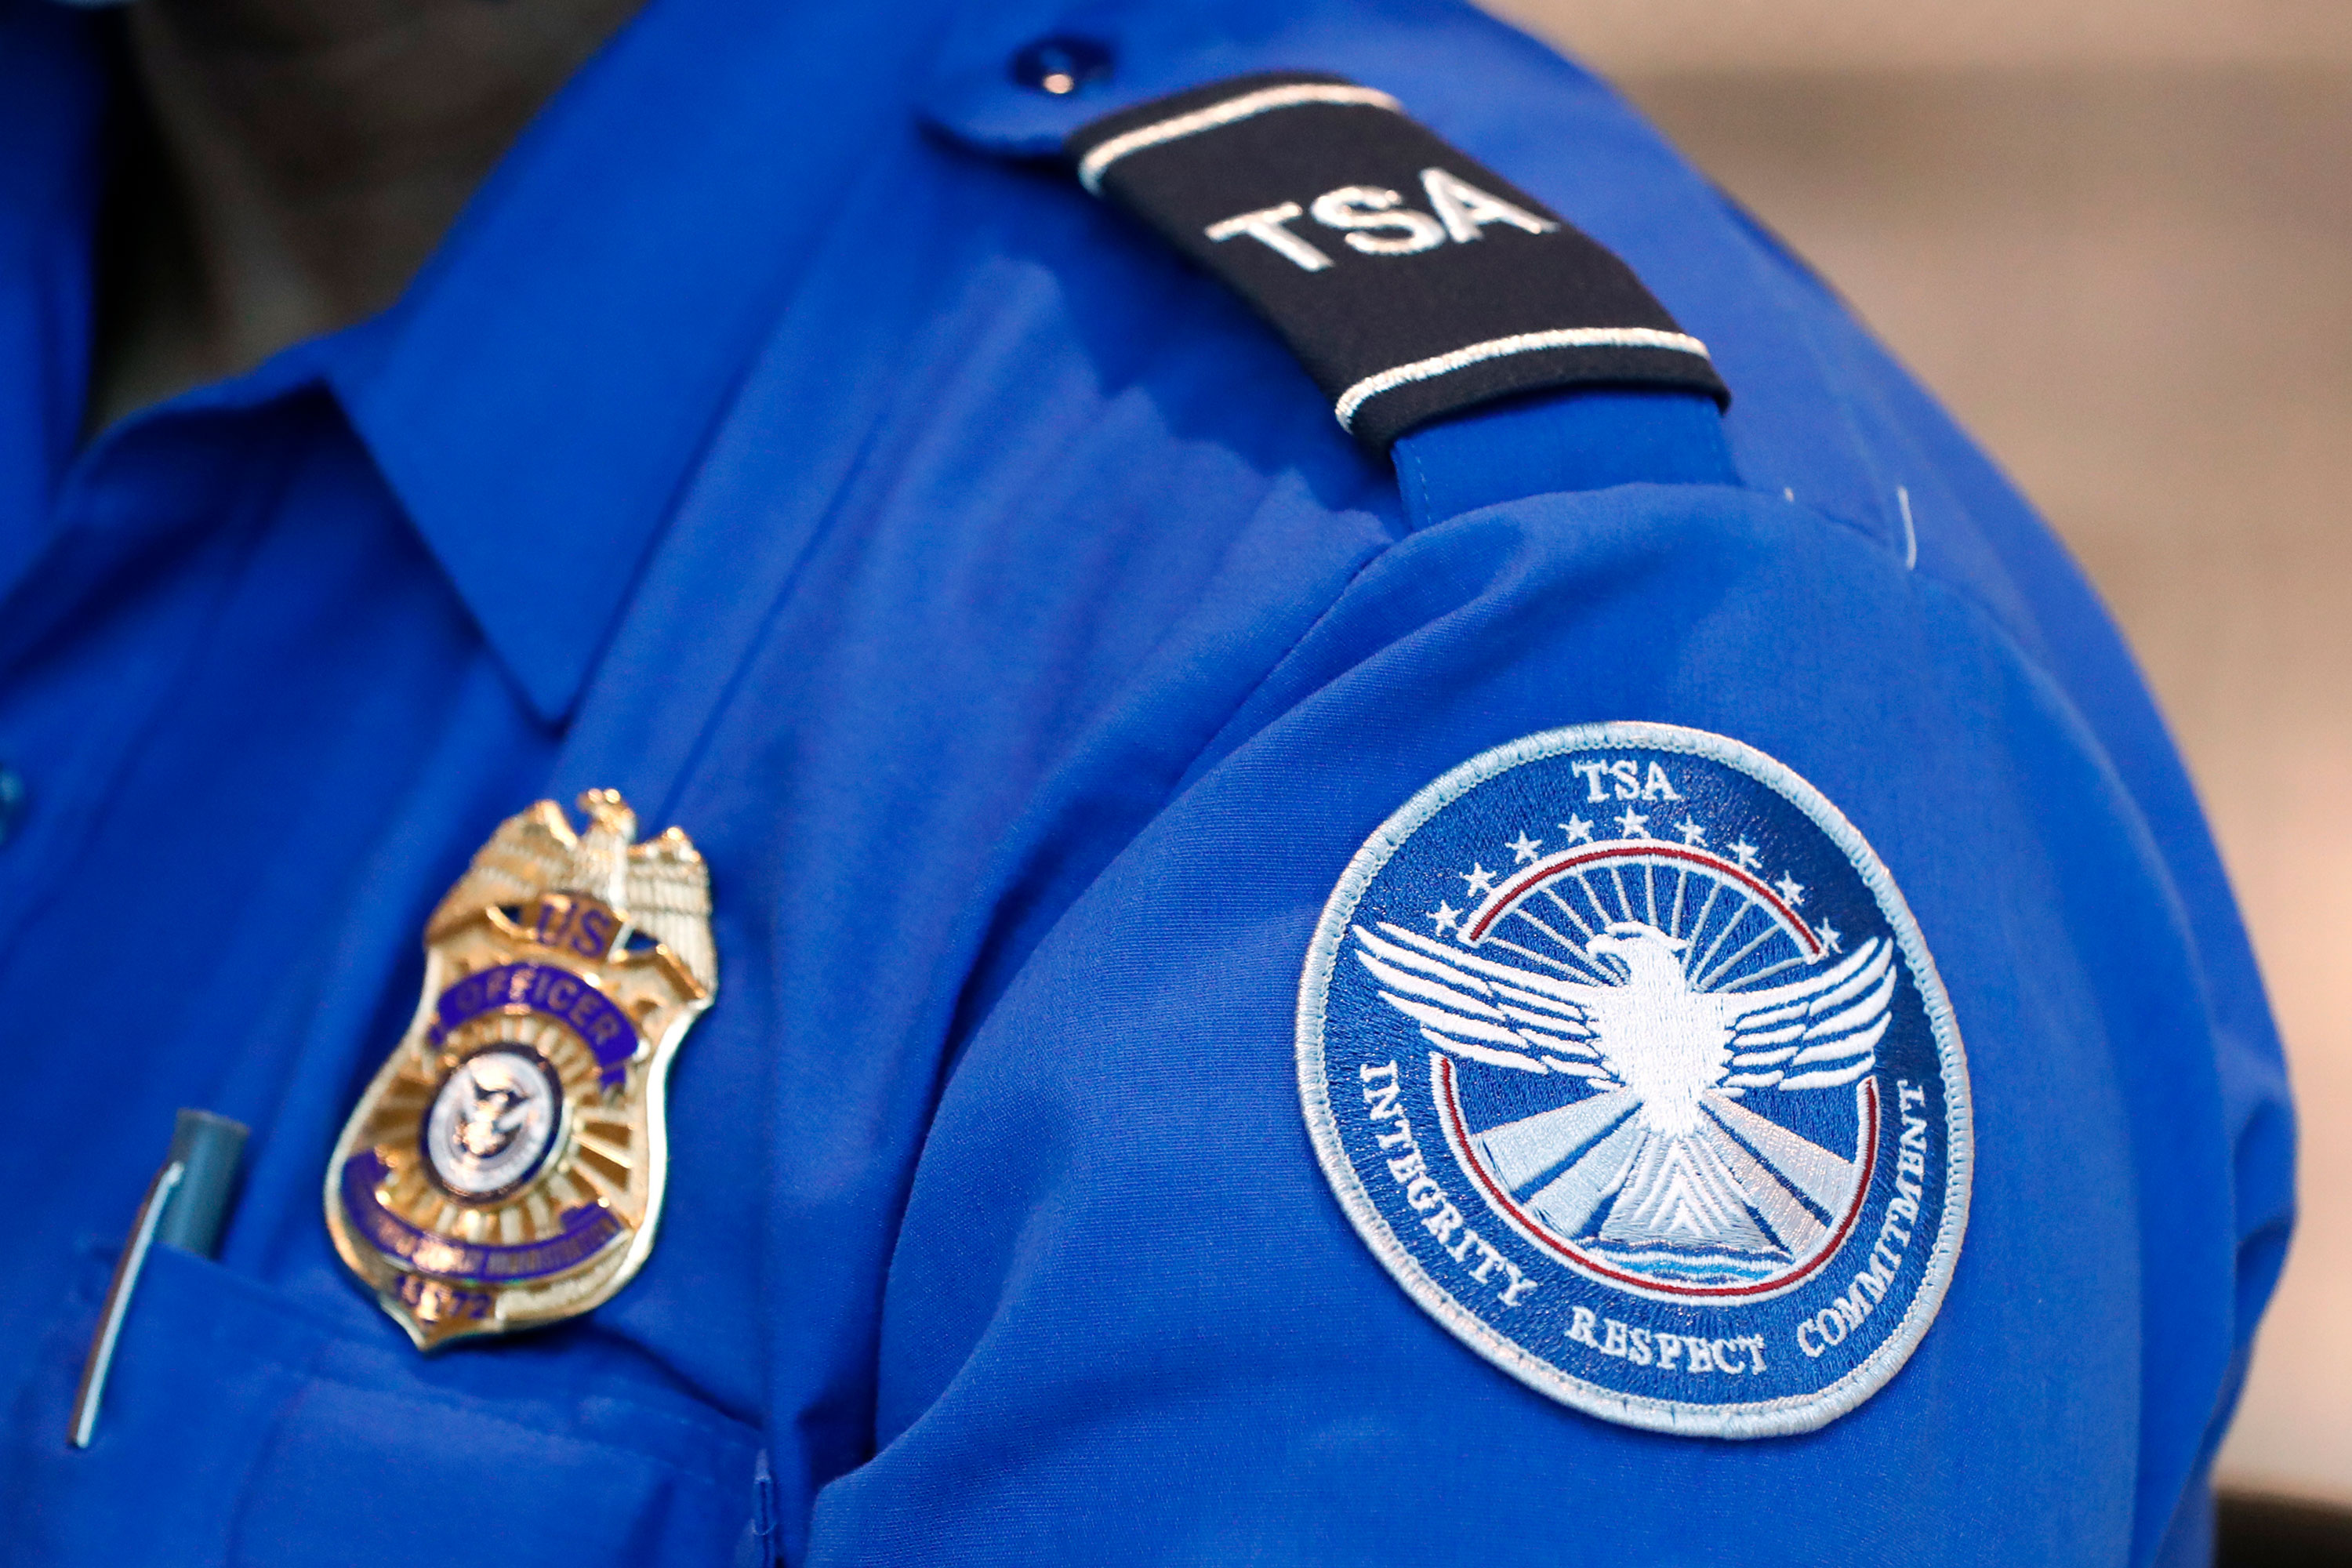 A TSA agent assists travelers at Love Field airport in Dallas, Texas, on June 24.